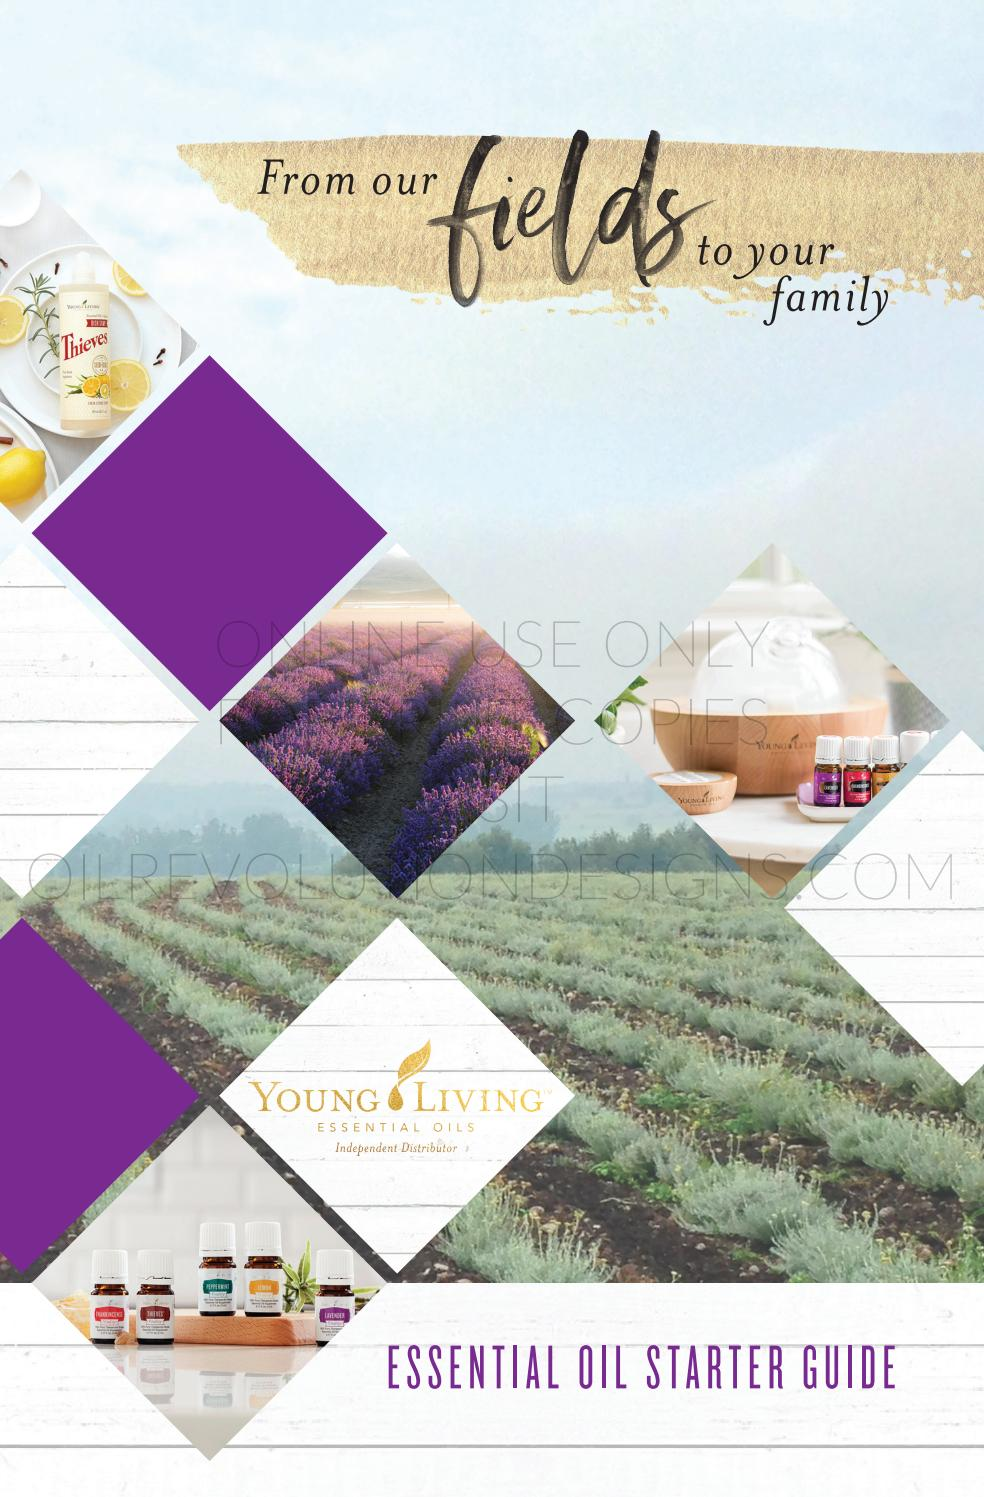 Oily Families Essential Oil Starter Guide By Oil Revolution Designs Issuu